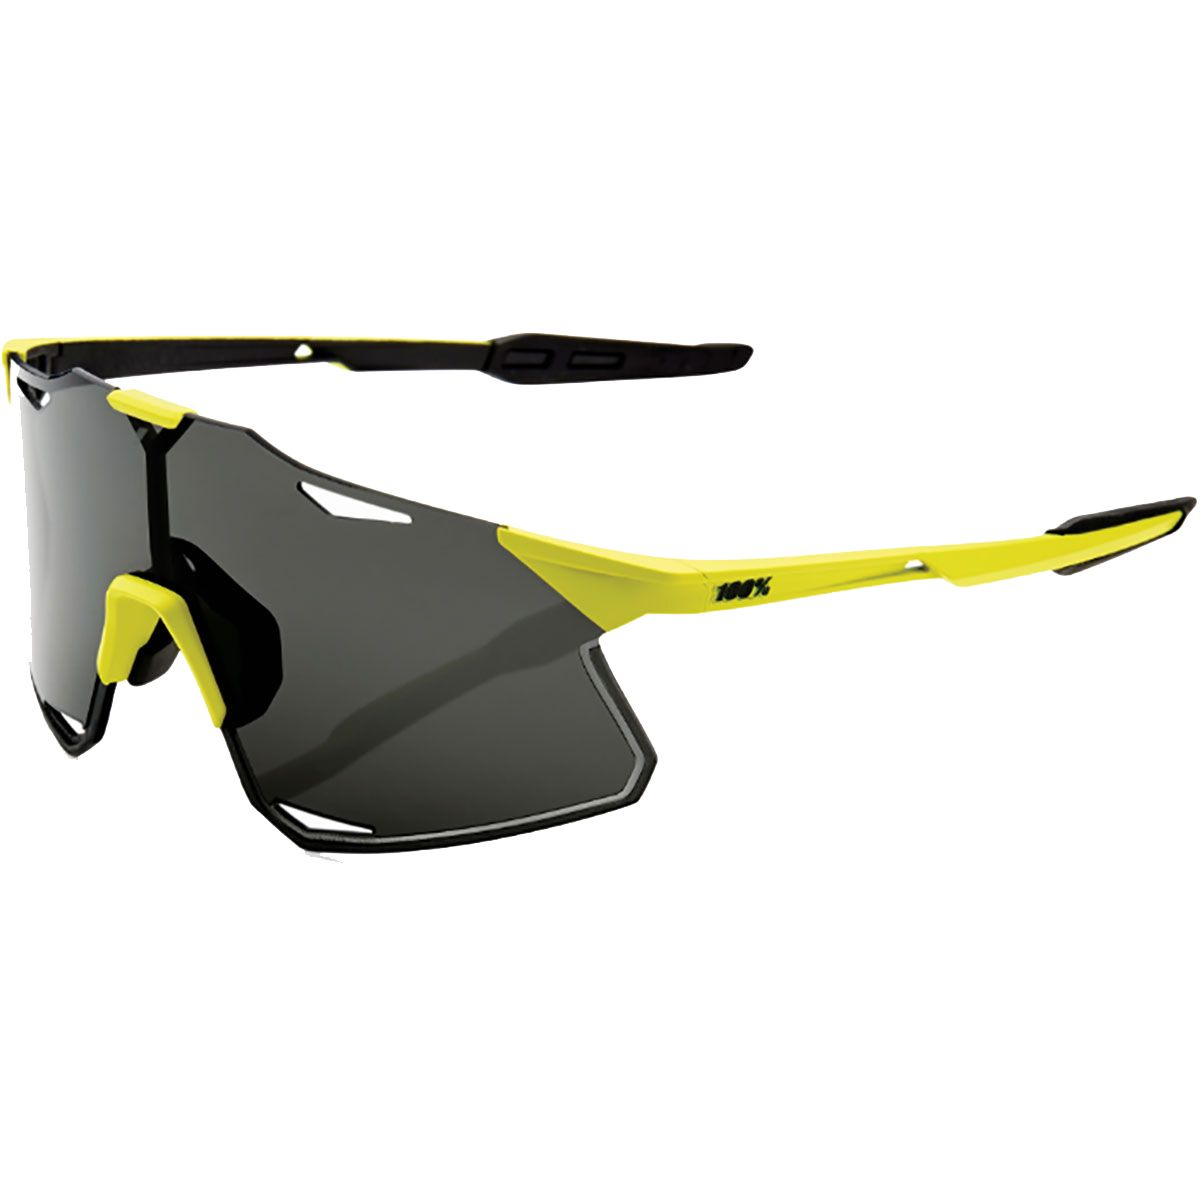 Image of 100% Hypercraft Smoke Sonnenbrille (Gelb)